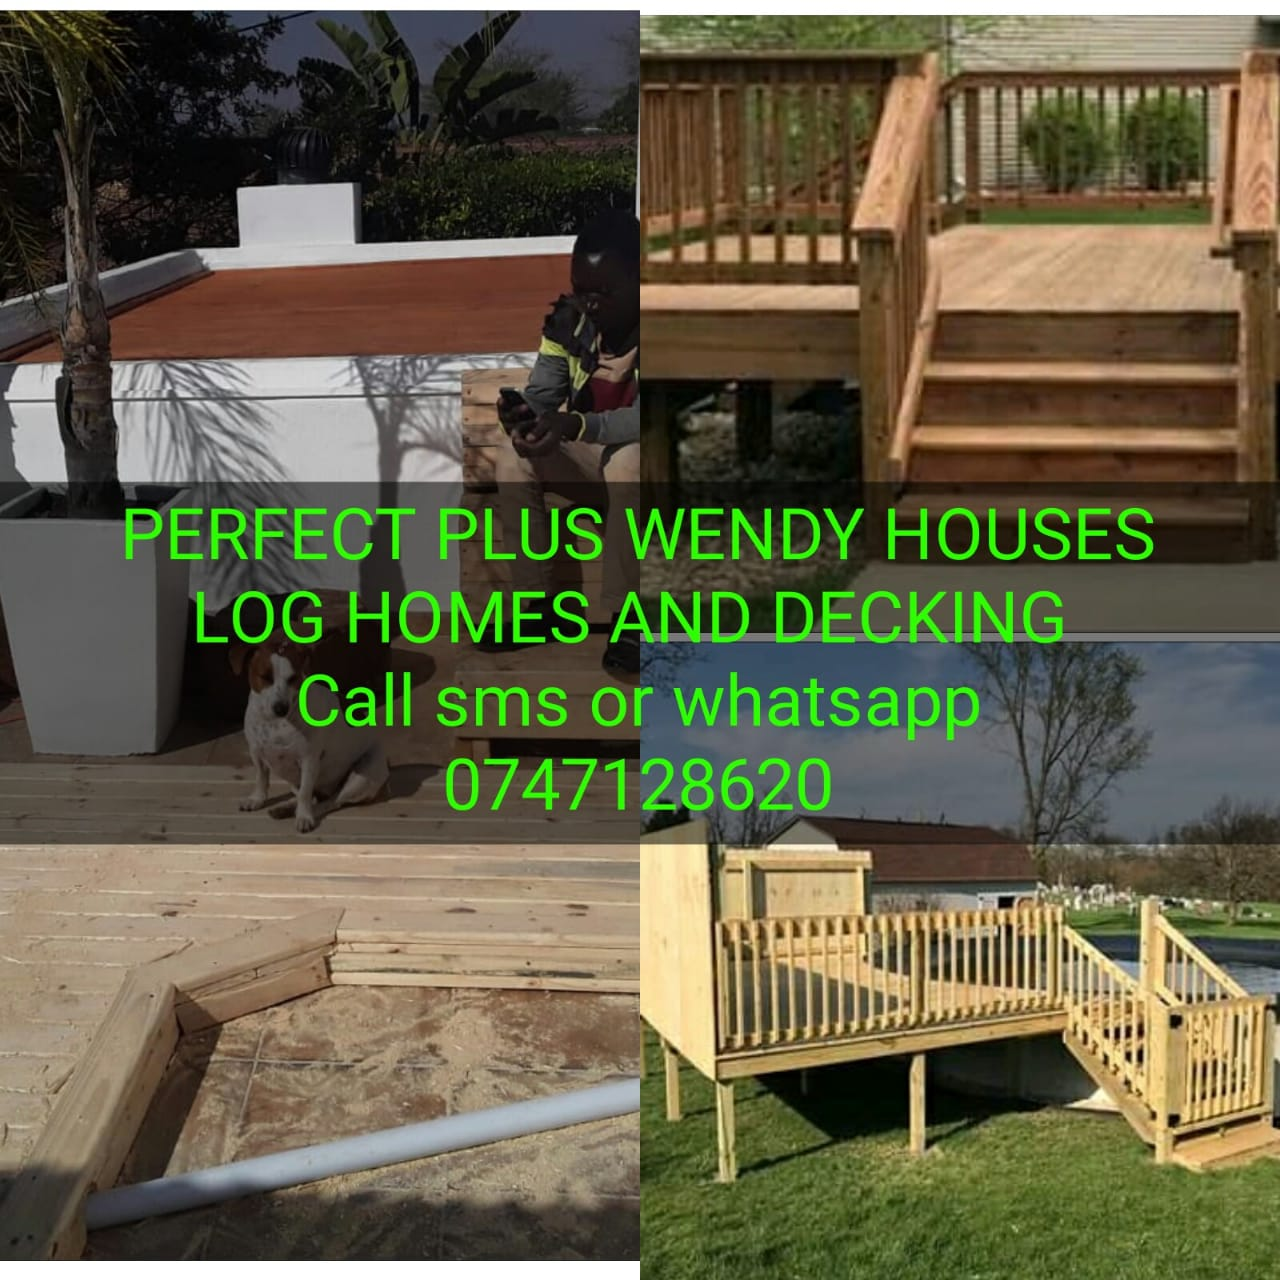 PERFECT PLUS WENDY HOUSES LOG HOMES AND DECKING